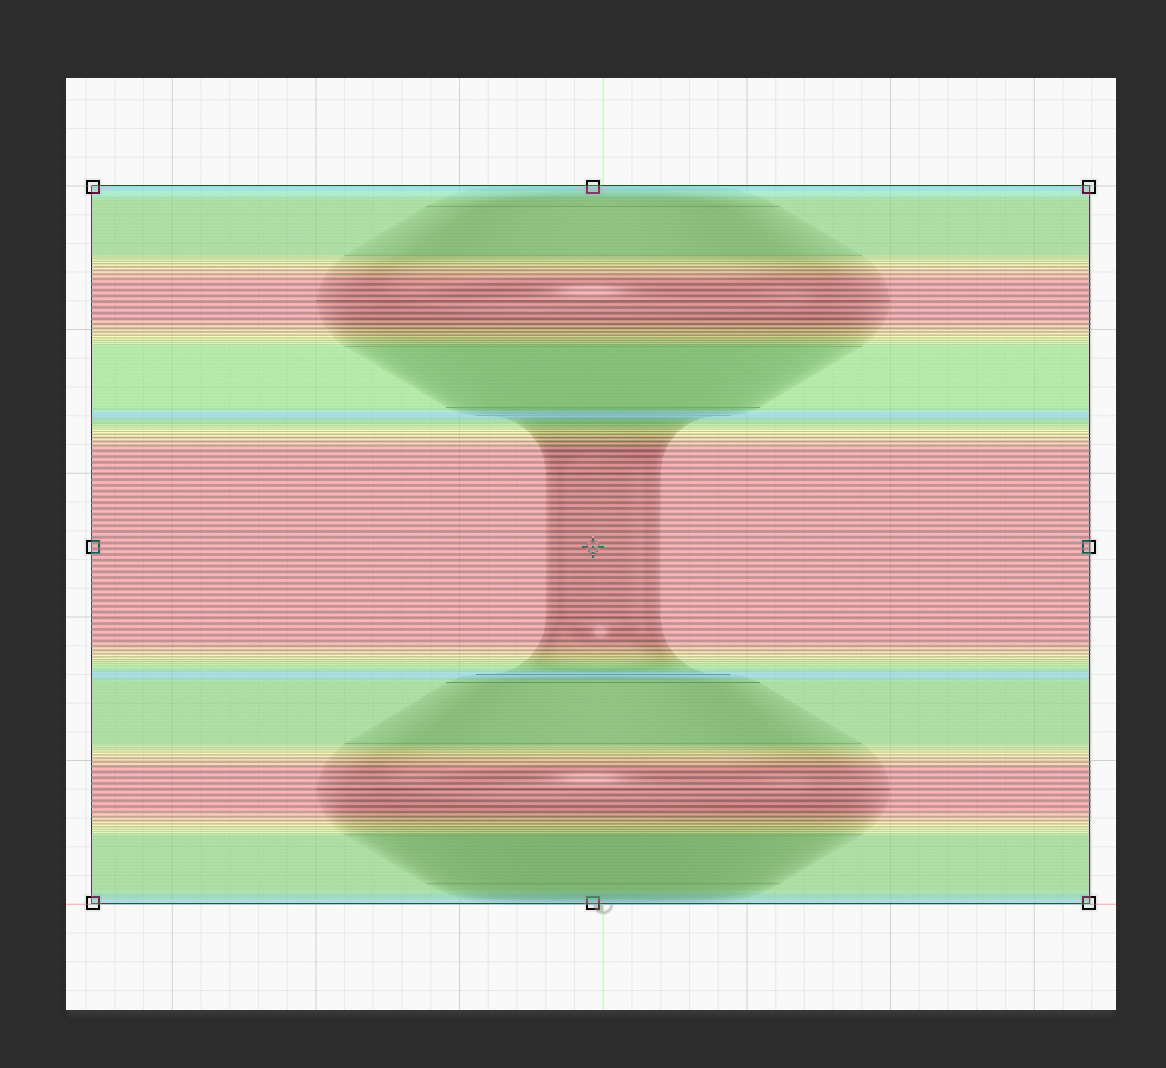 Picture of Visualizing VariSlice With the DrawLayersGeneral.pde Sketch